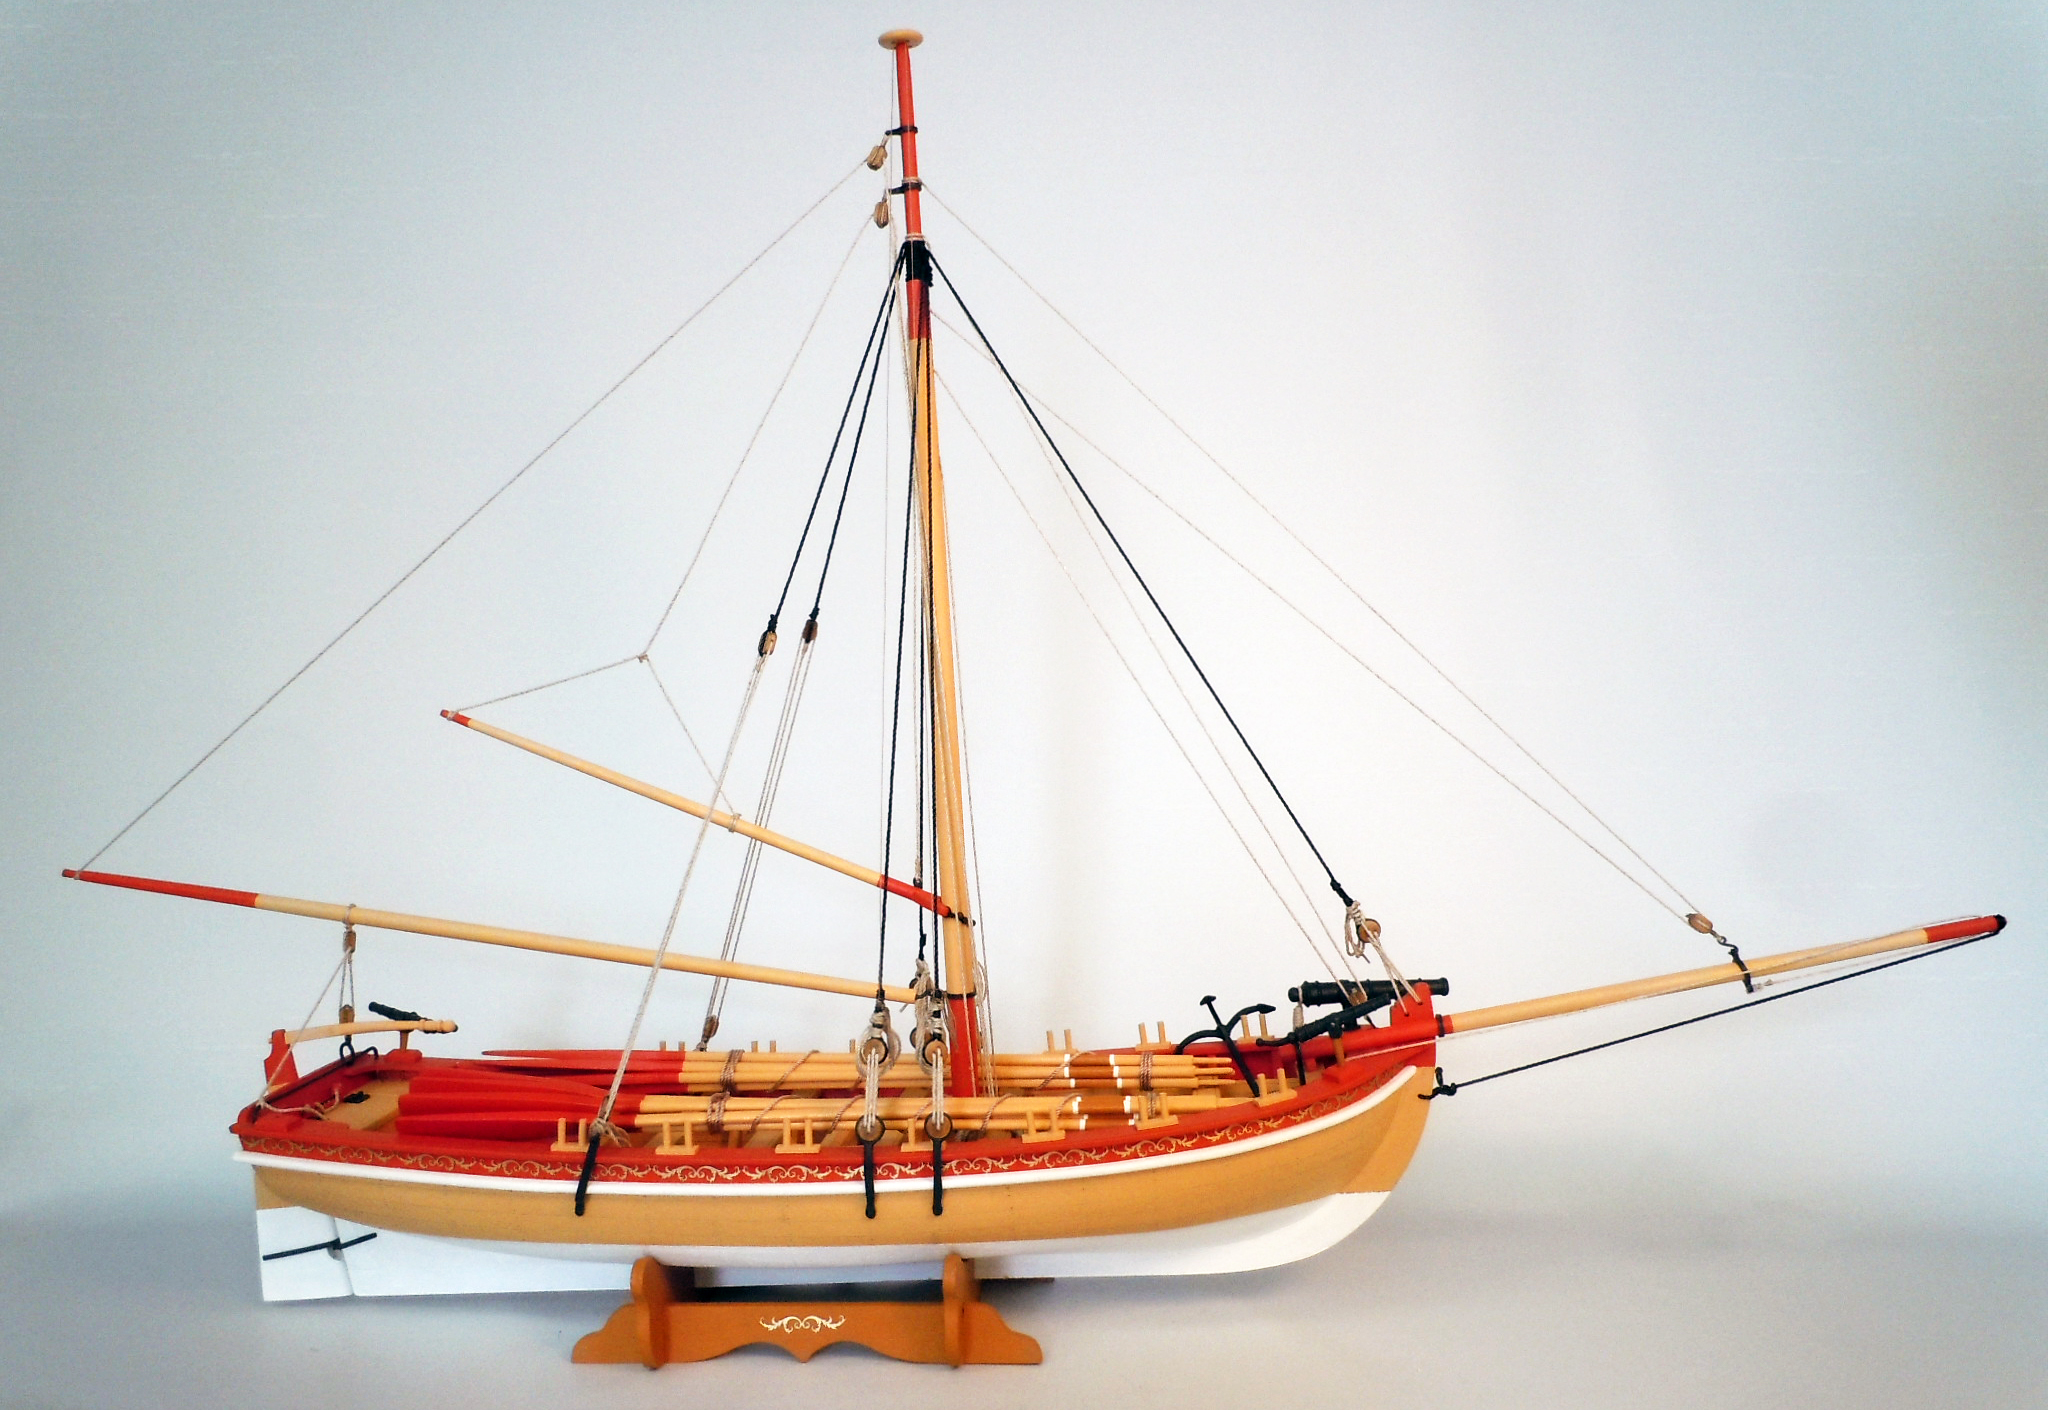 Model Shipways MS1460 18th Century Armed Longboat 1:24 Scale - Laser Cut Wood, Metal & Photo-etched Brass Kit